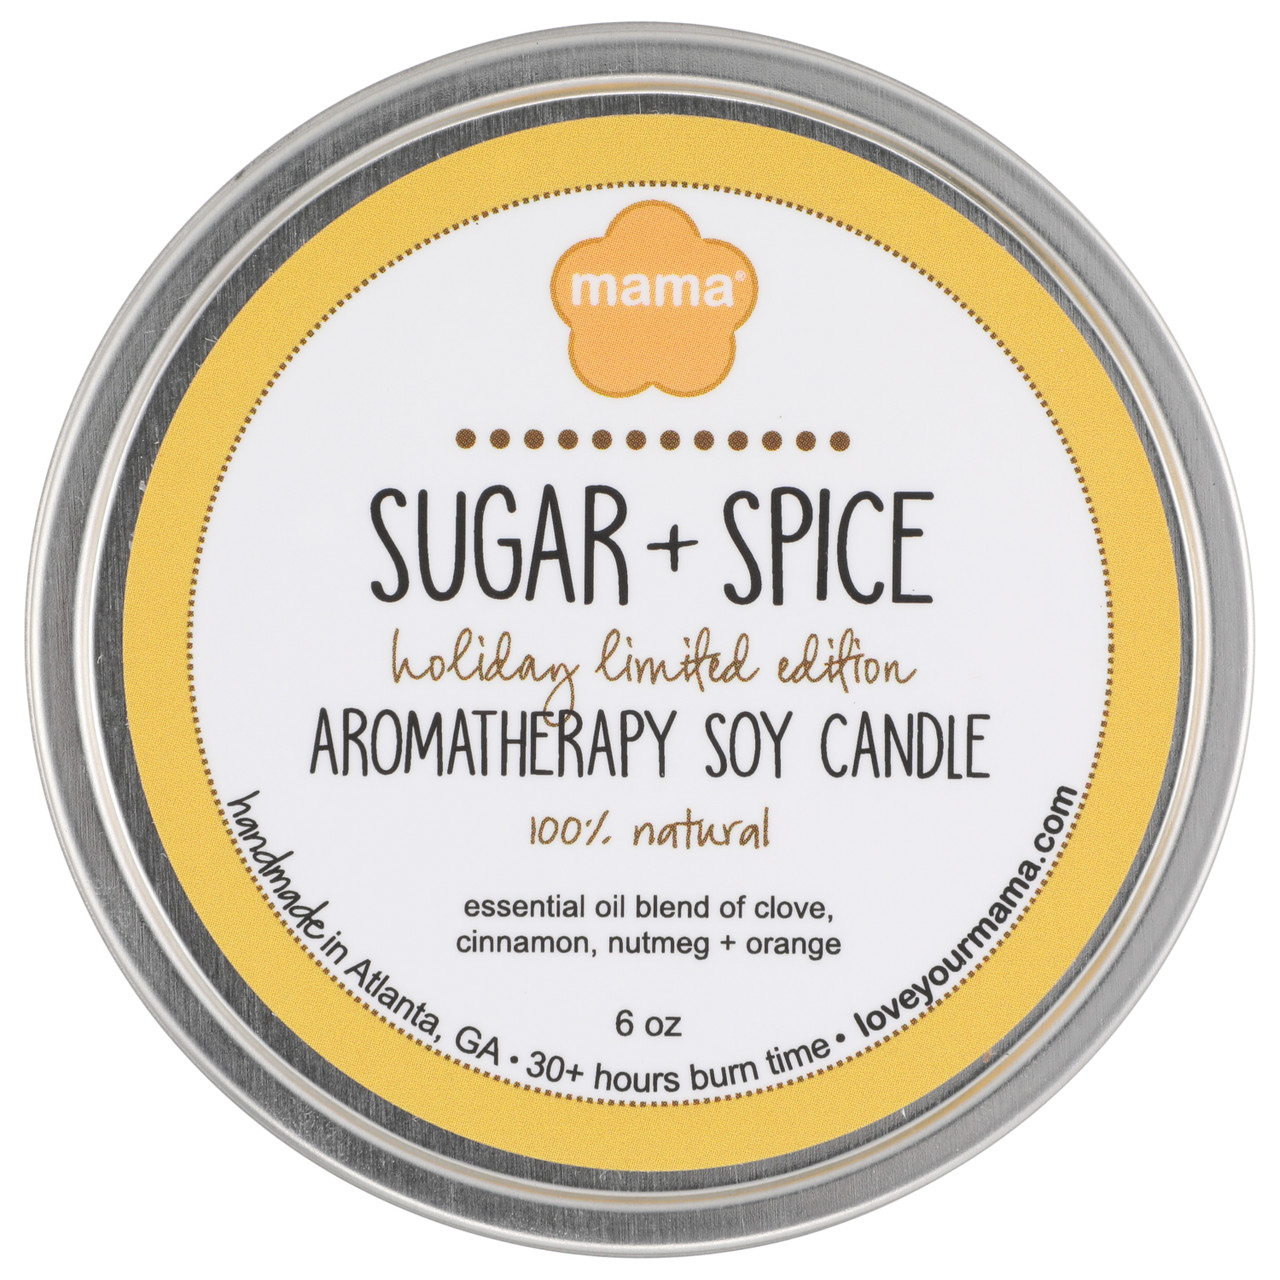 Sugar + Spice 6 oz. Soy Candle Tin | Mama Bath + Body